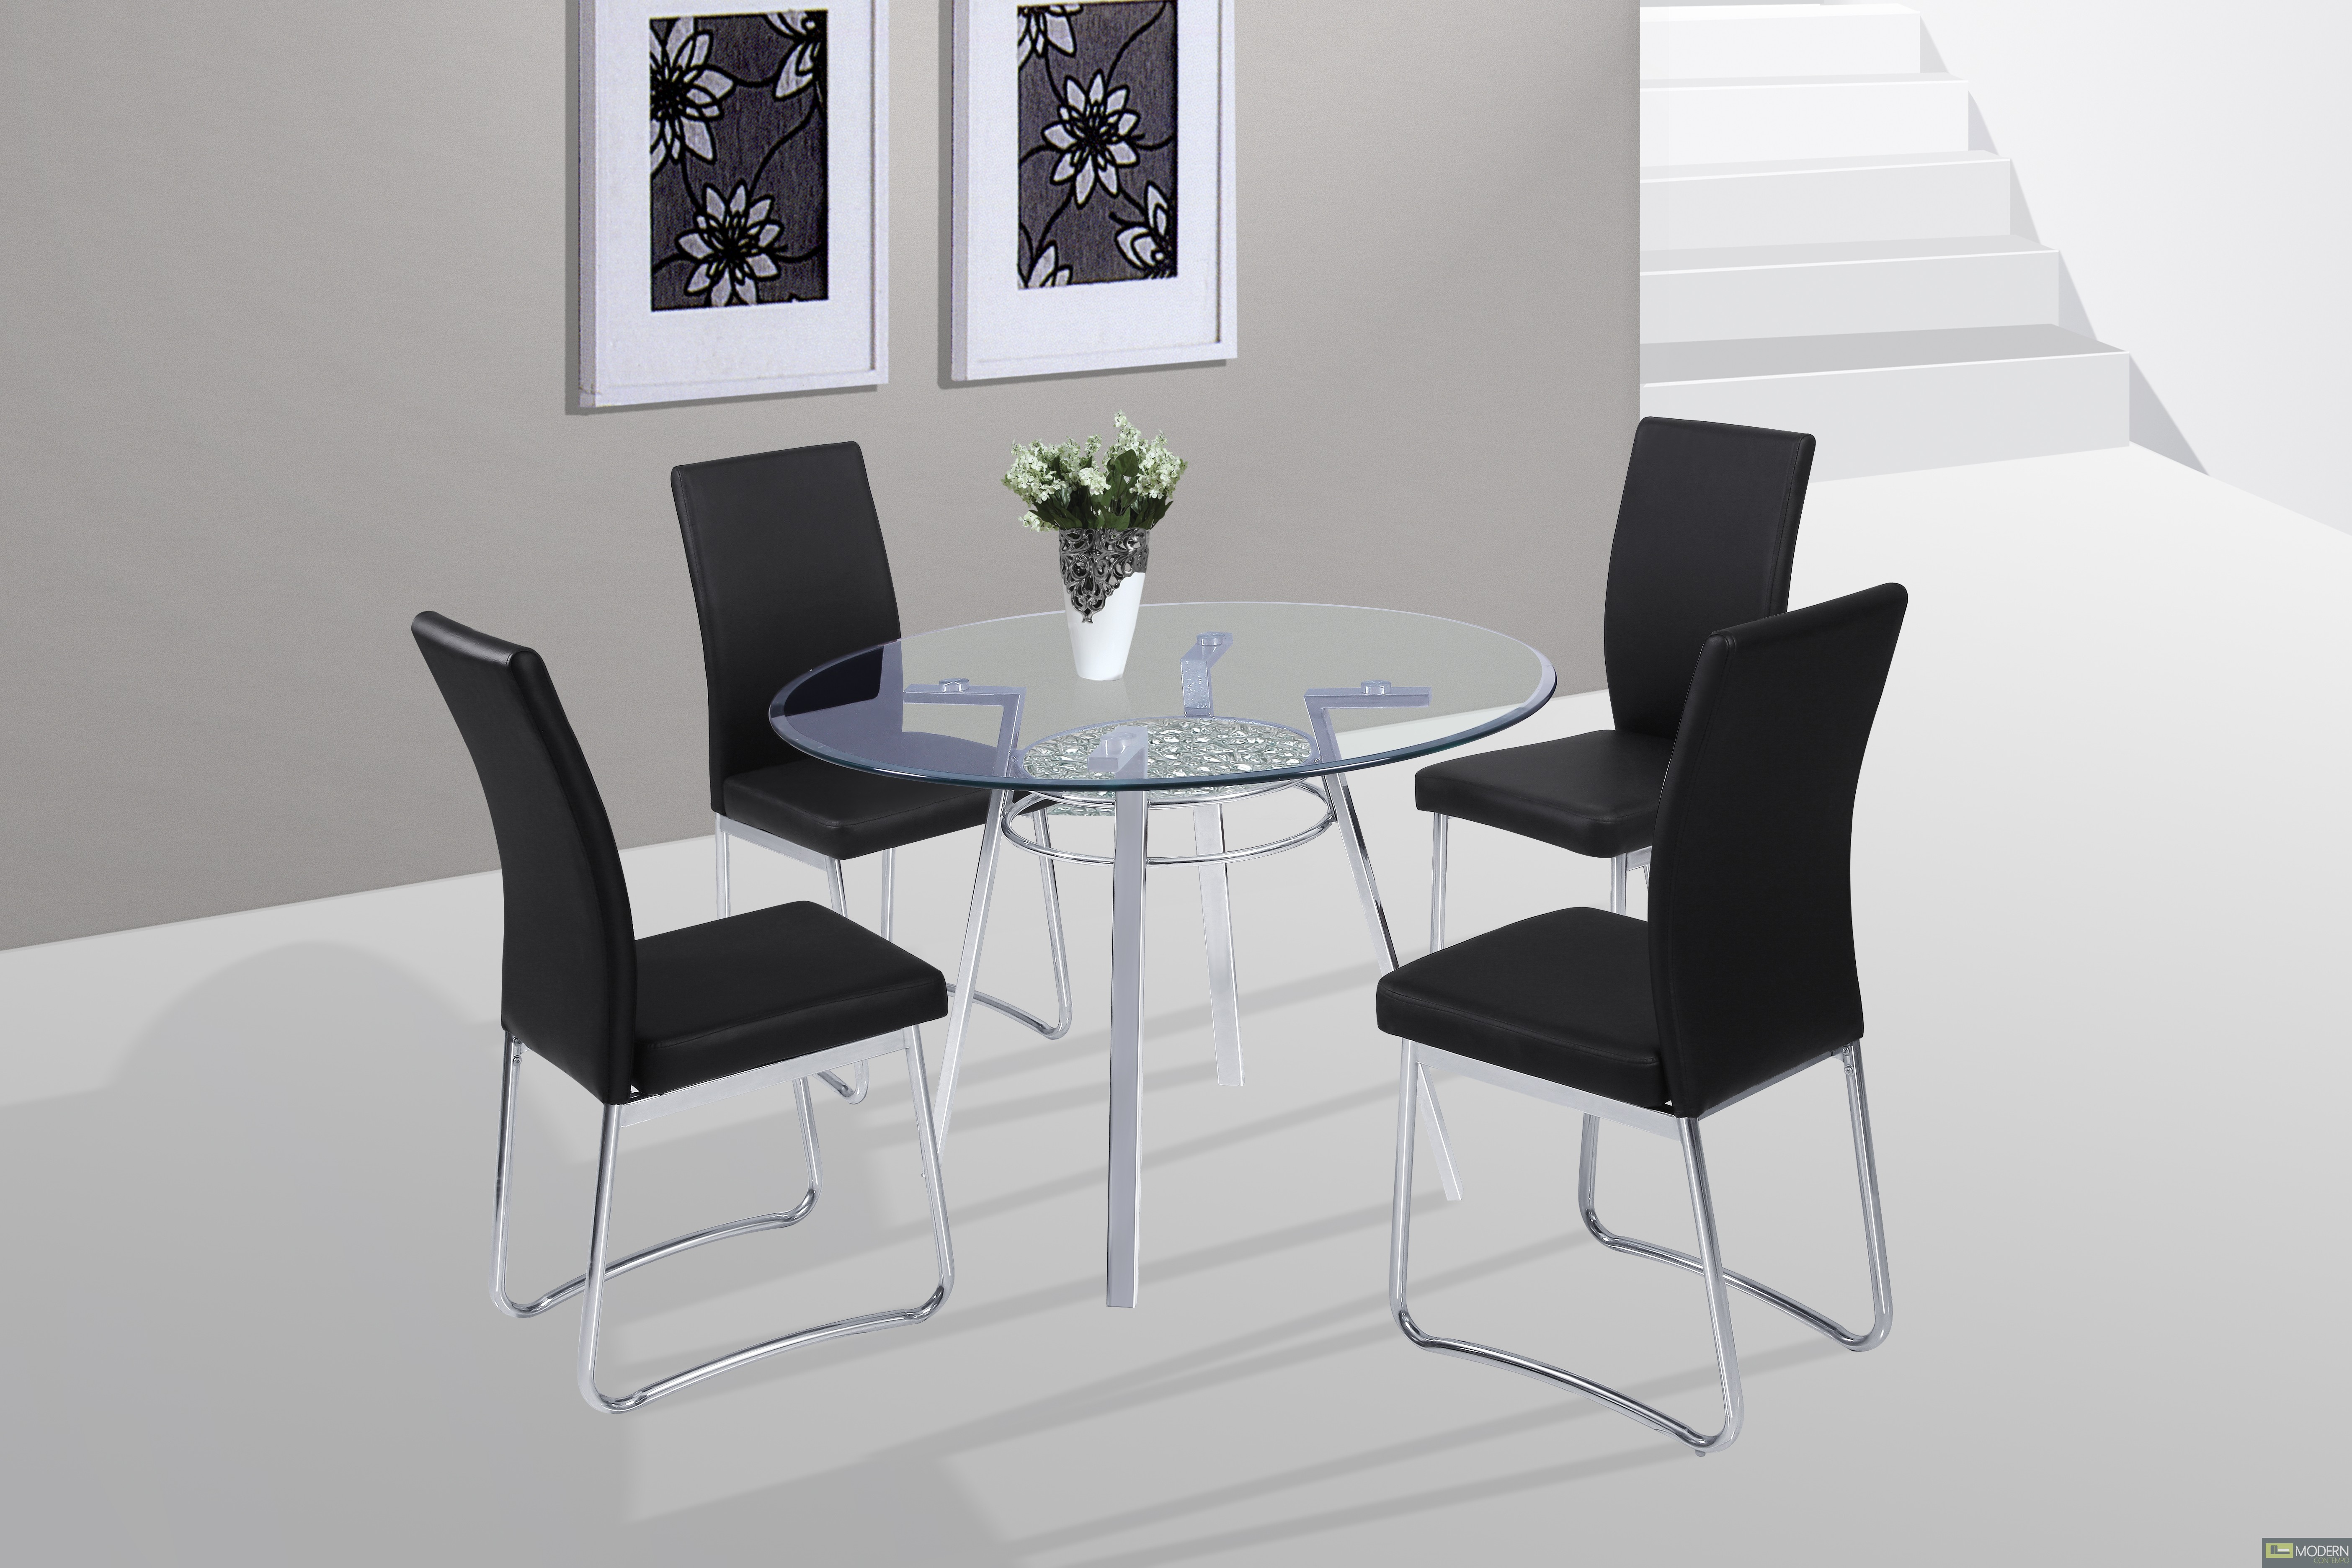 5 Pc Modern White Tempered Glass Dining Room Set Table & Chairs TBQD373